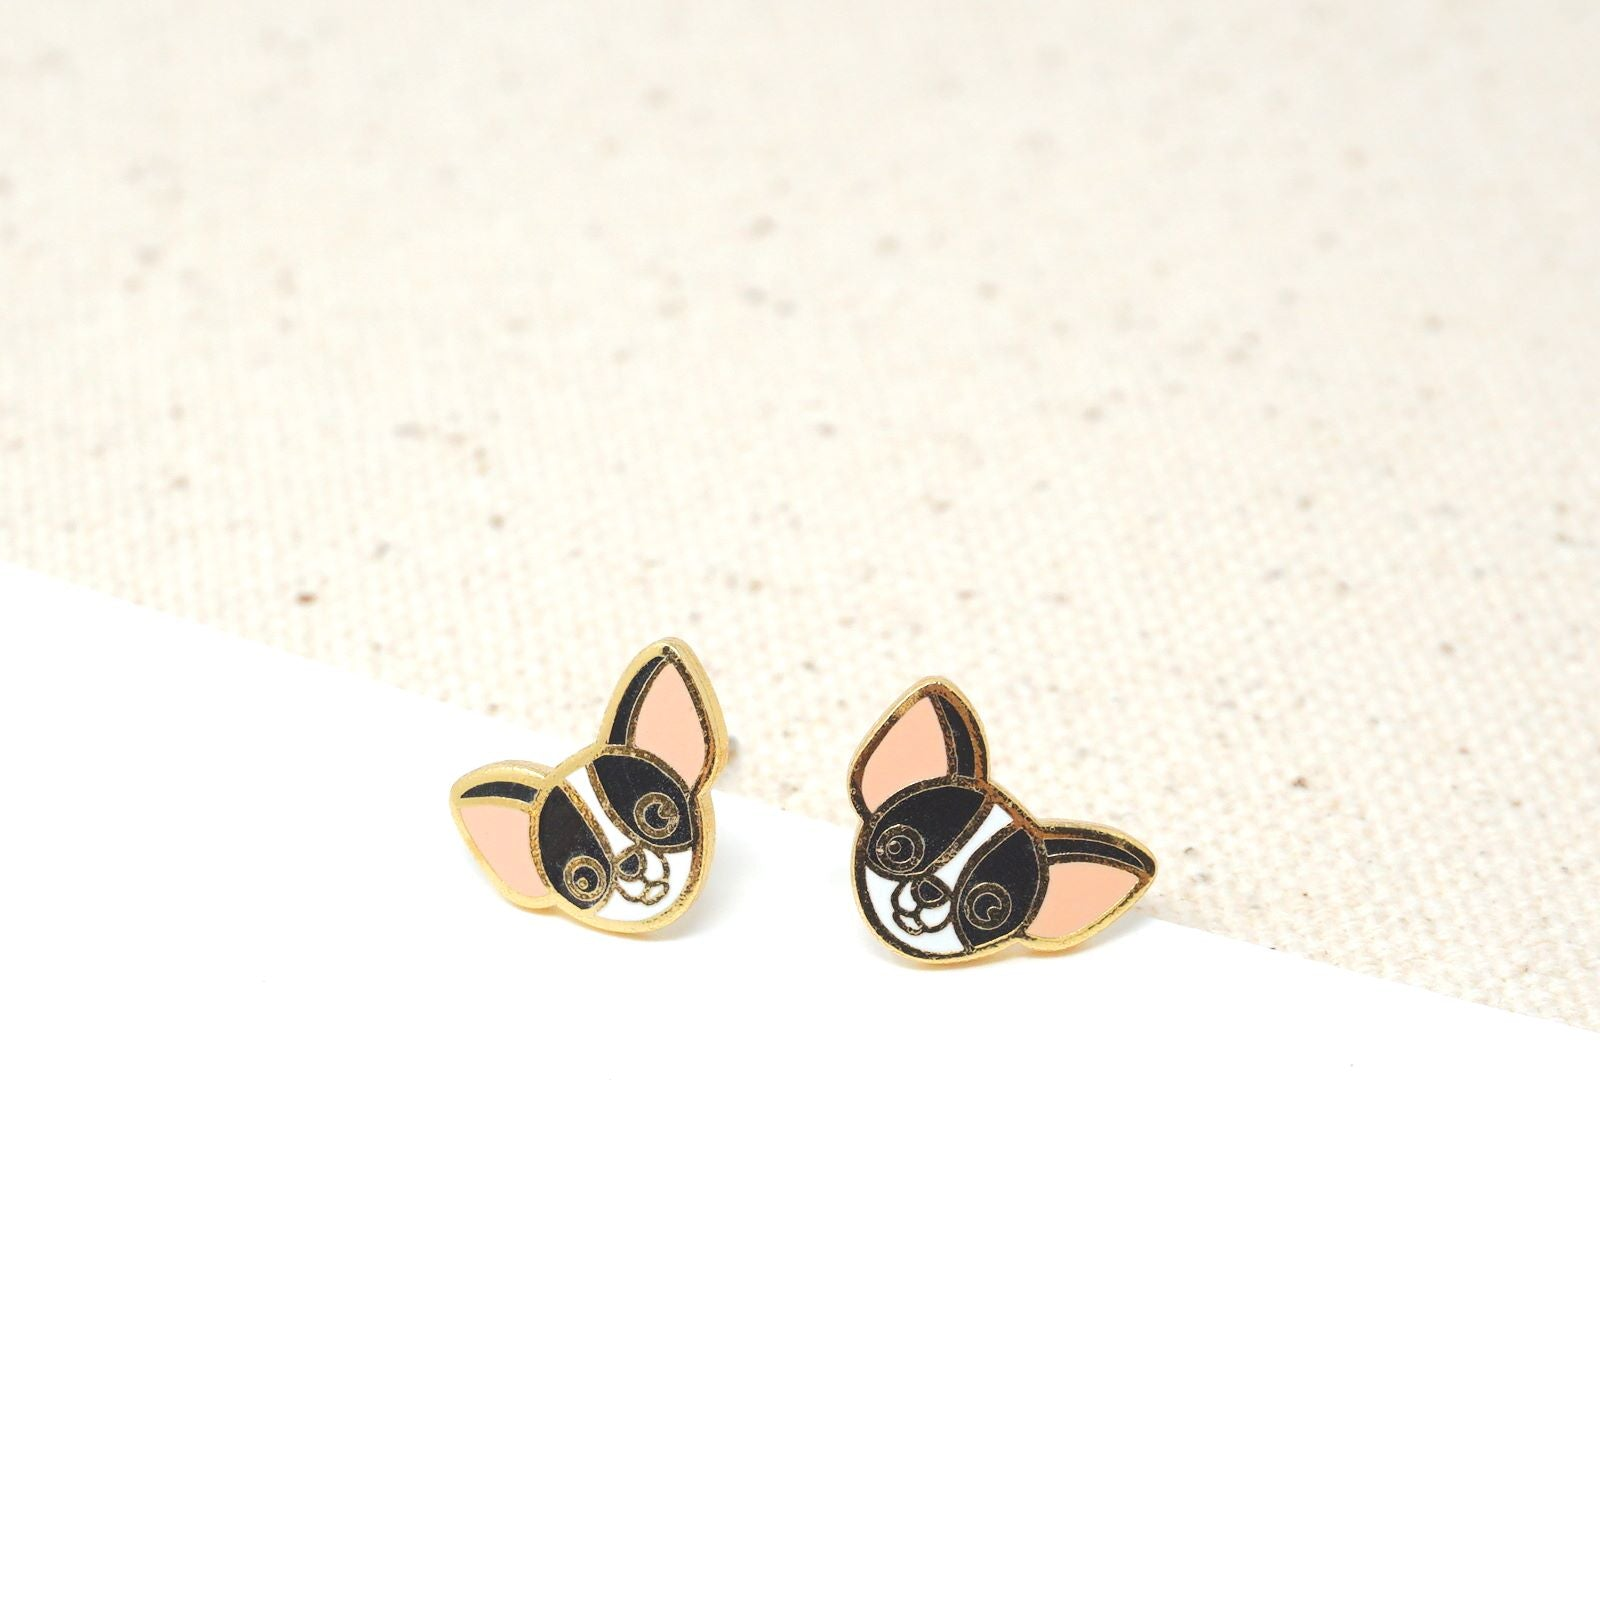 Handcrafted Black Chihuahua Enamel Stud Earrings